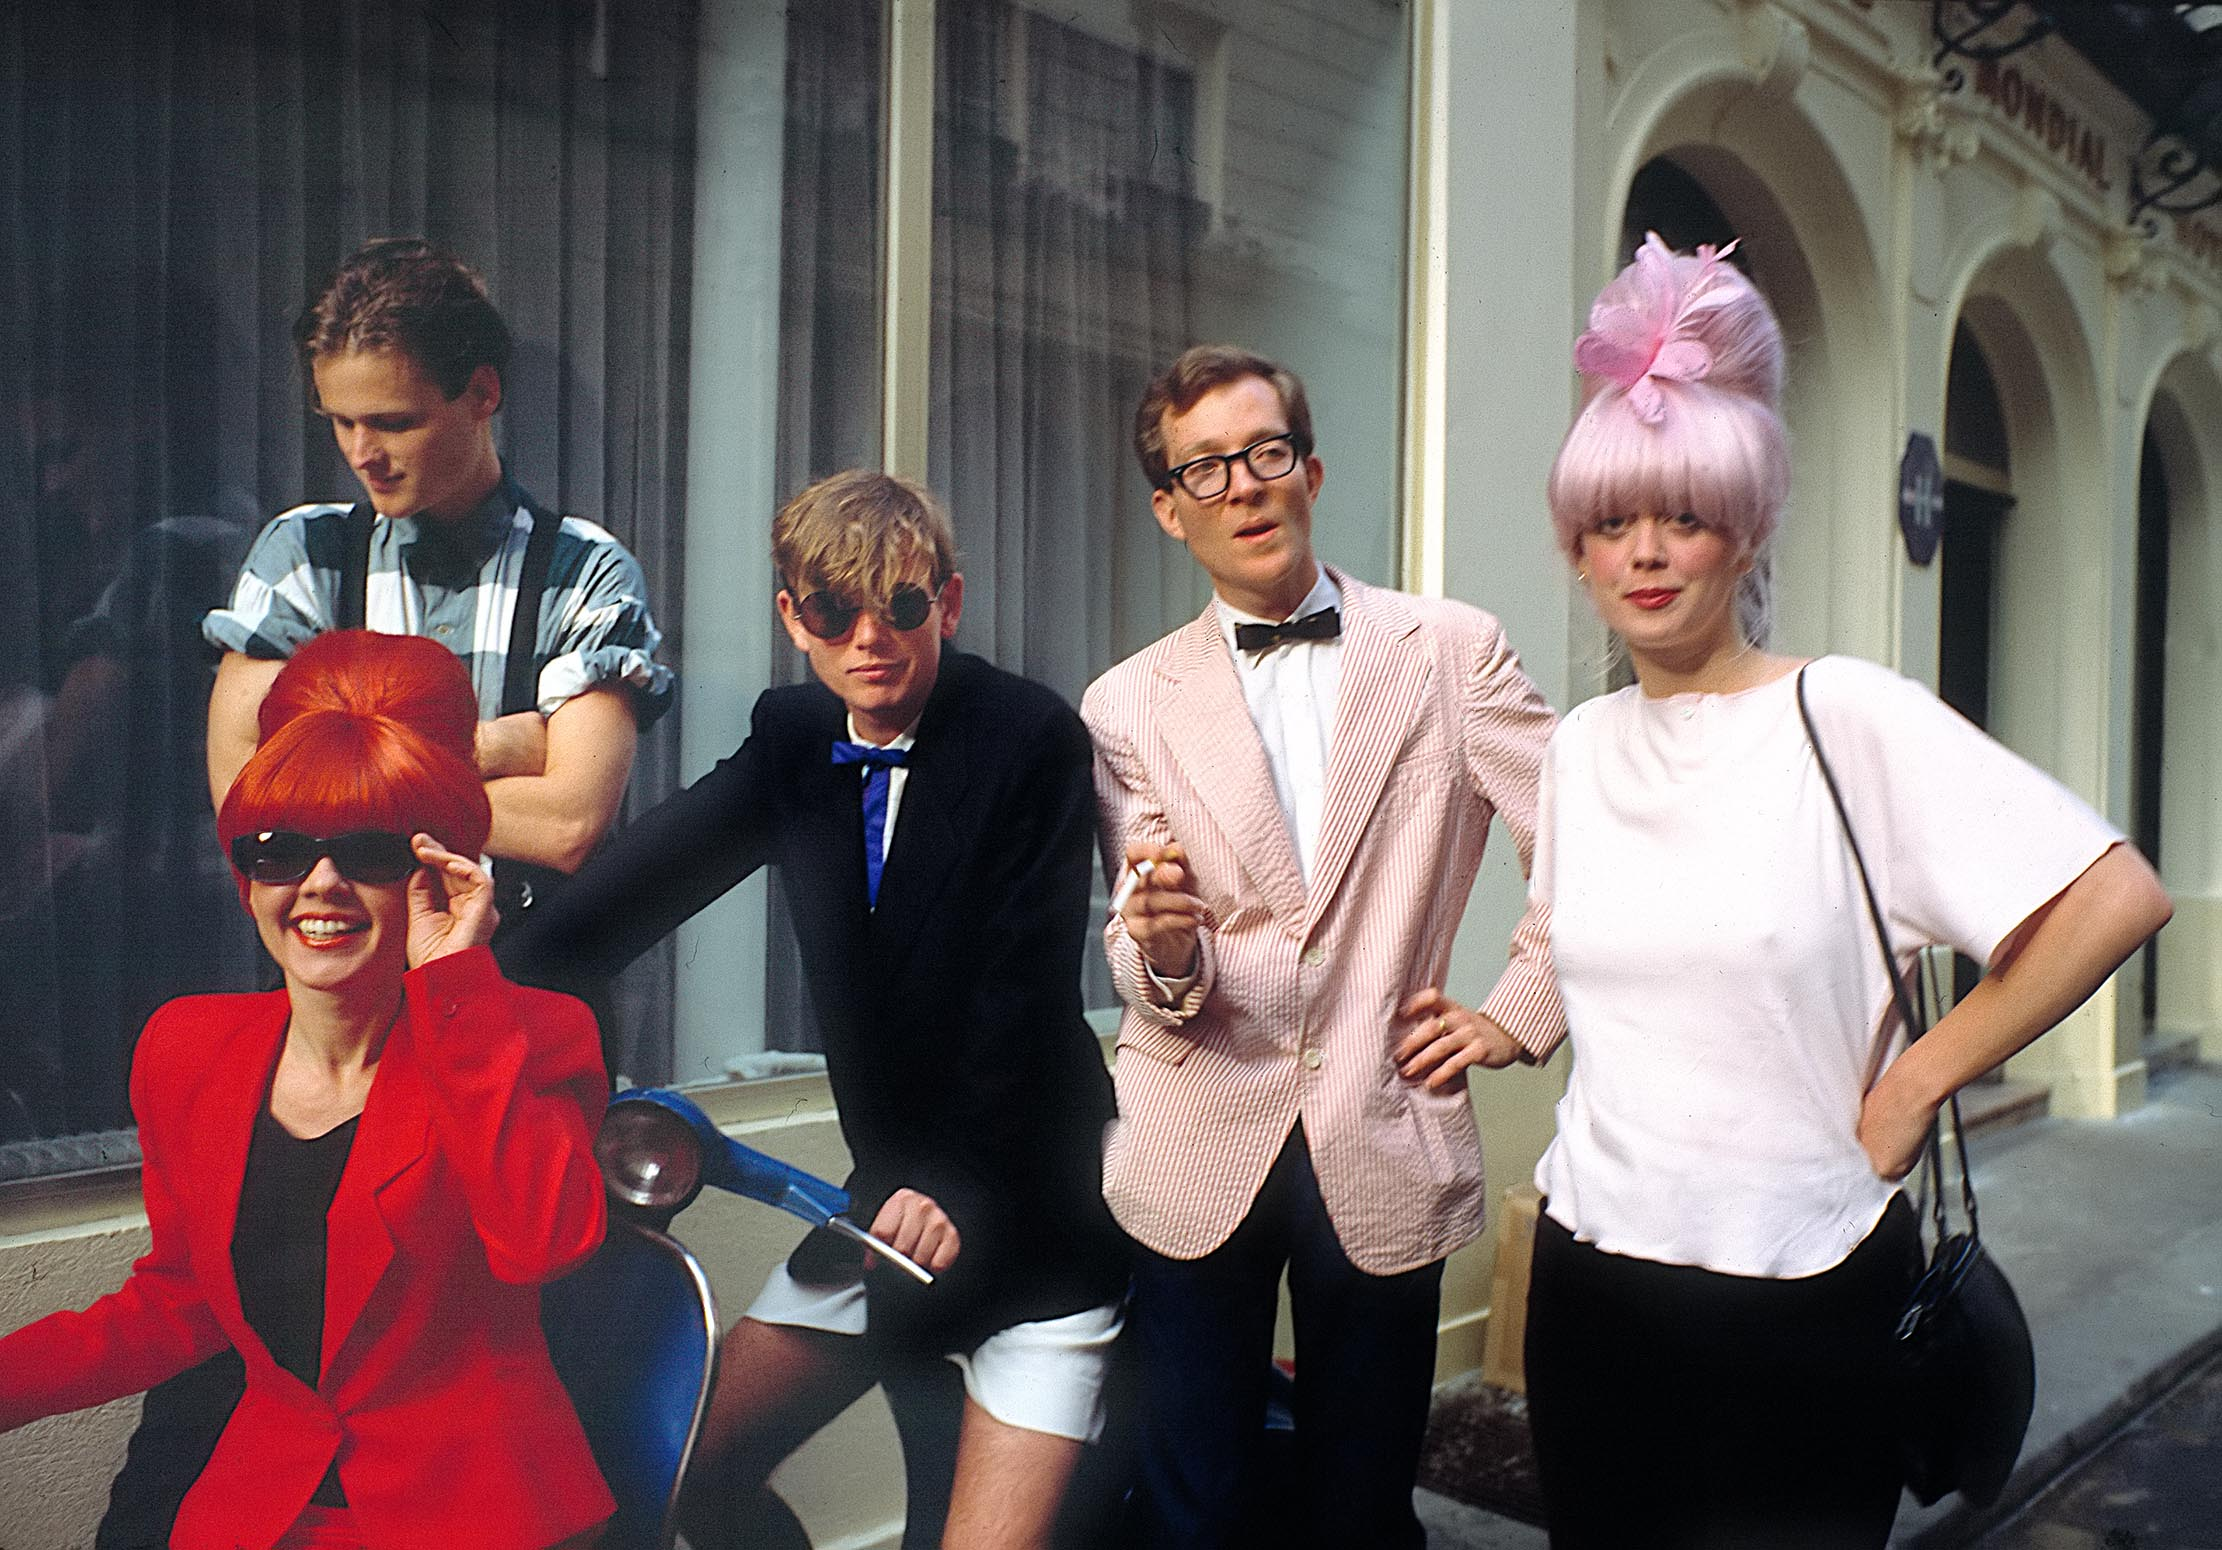 B52's Paris 1983 - Photographic Biography